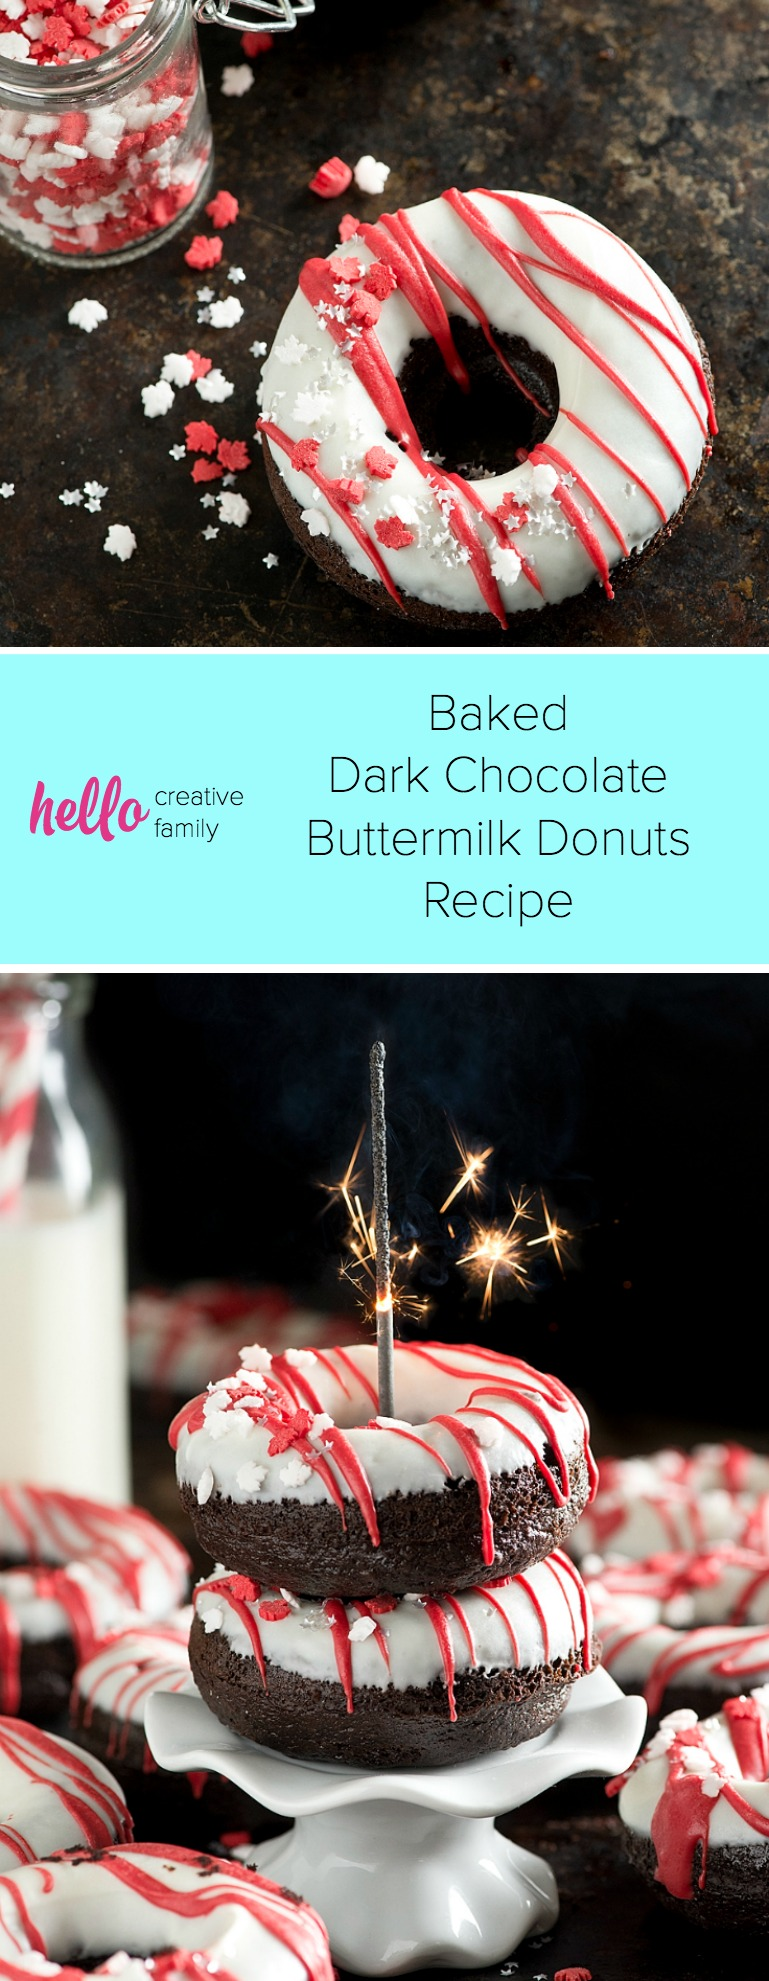 Making donuts at home is so much fun and your family will love them! This moist and delicious Baked Dark Chocolate Buttermilk Donuts Recipe can be made and glazed in under an hour! A perfect rich and tender, chocolate-y cake donut! So easy and perfect for entertaining or special celebrations like Canada Day! #Baking #donuts #CanadaDay #Dessert